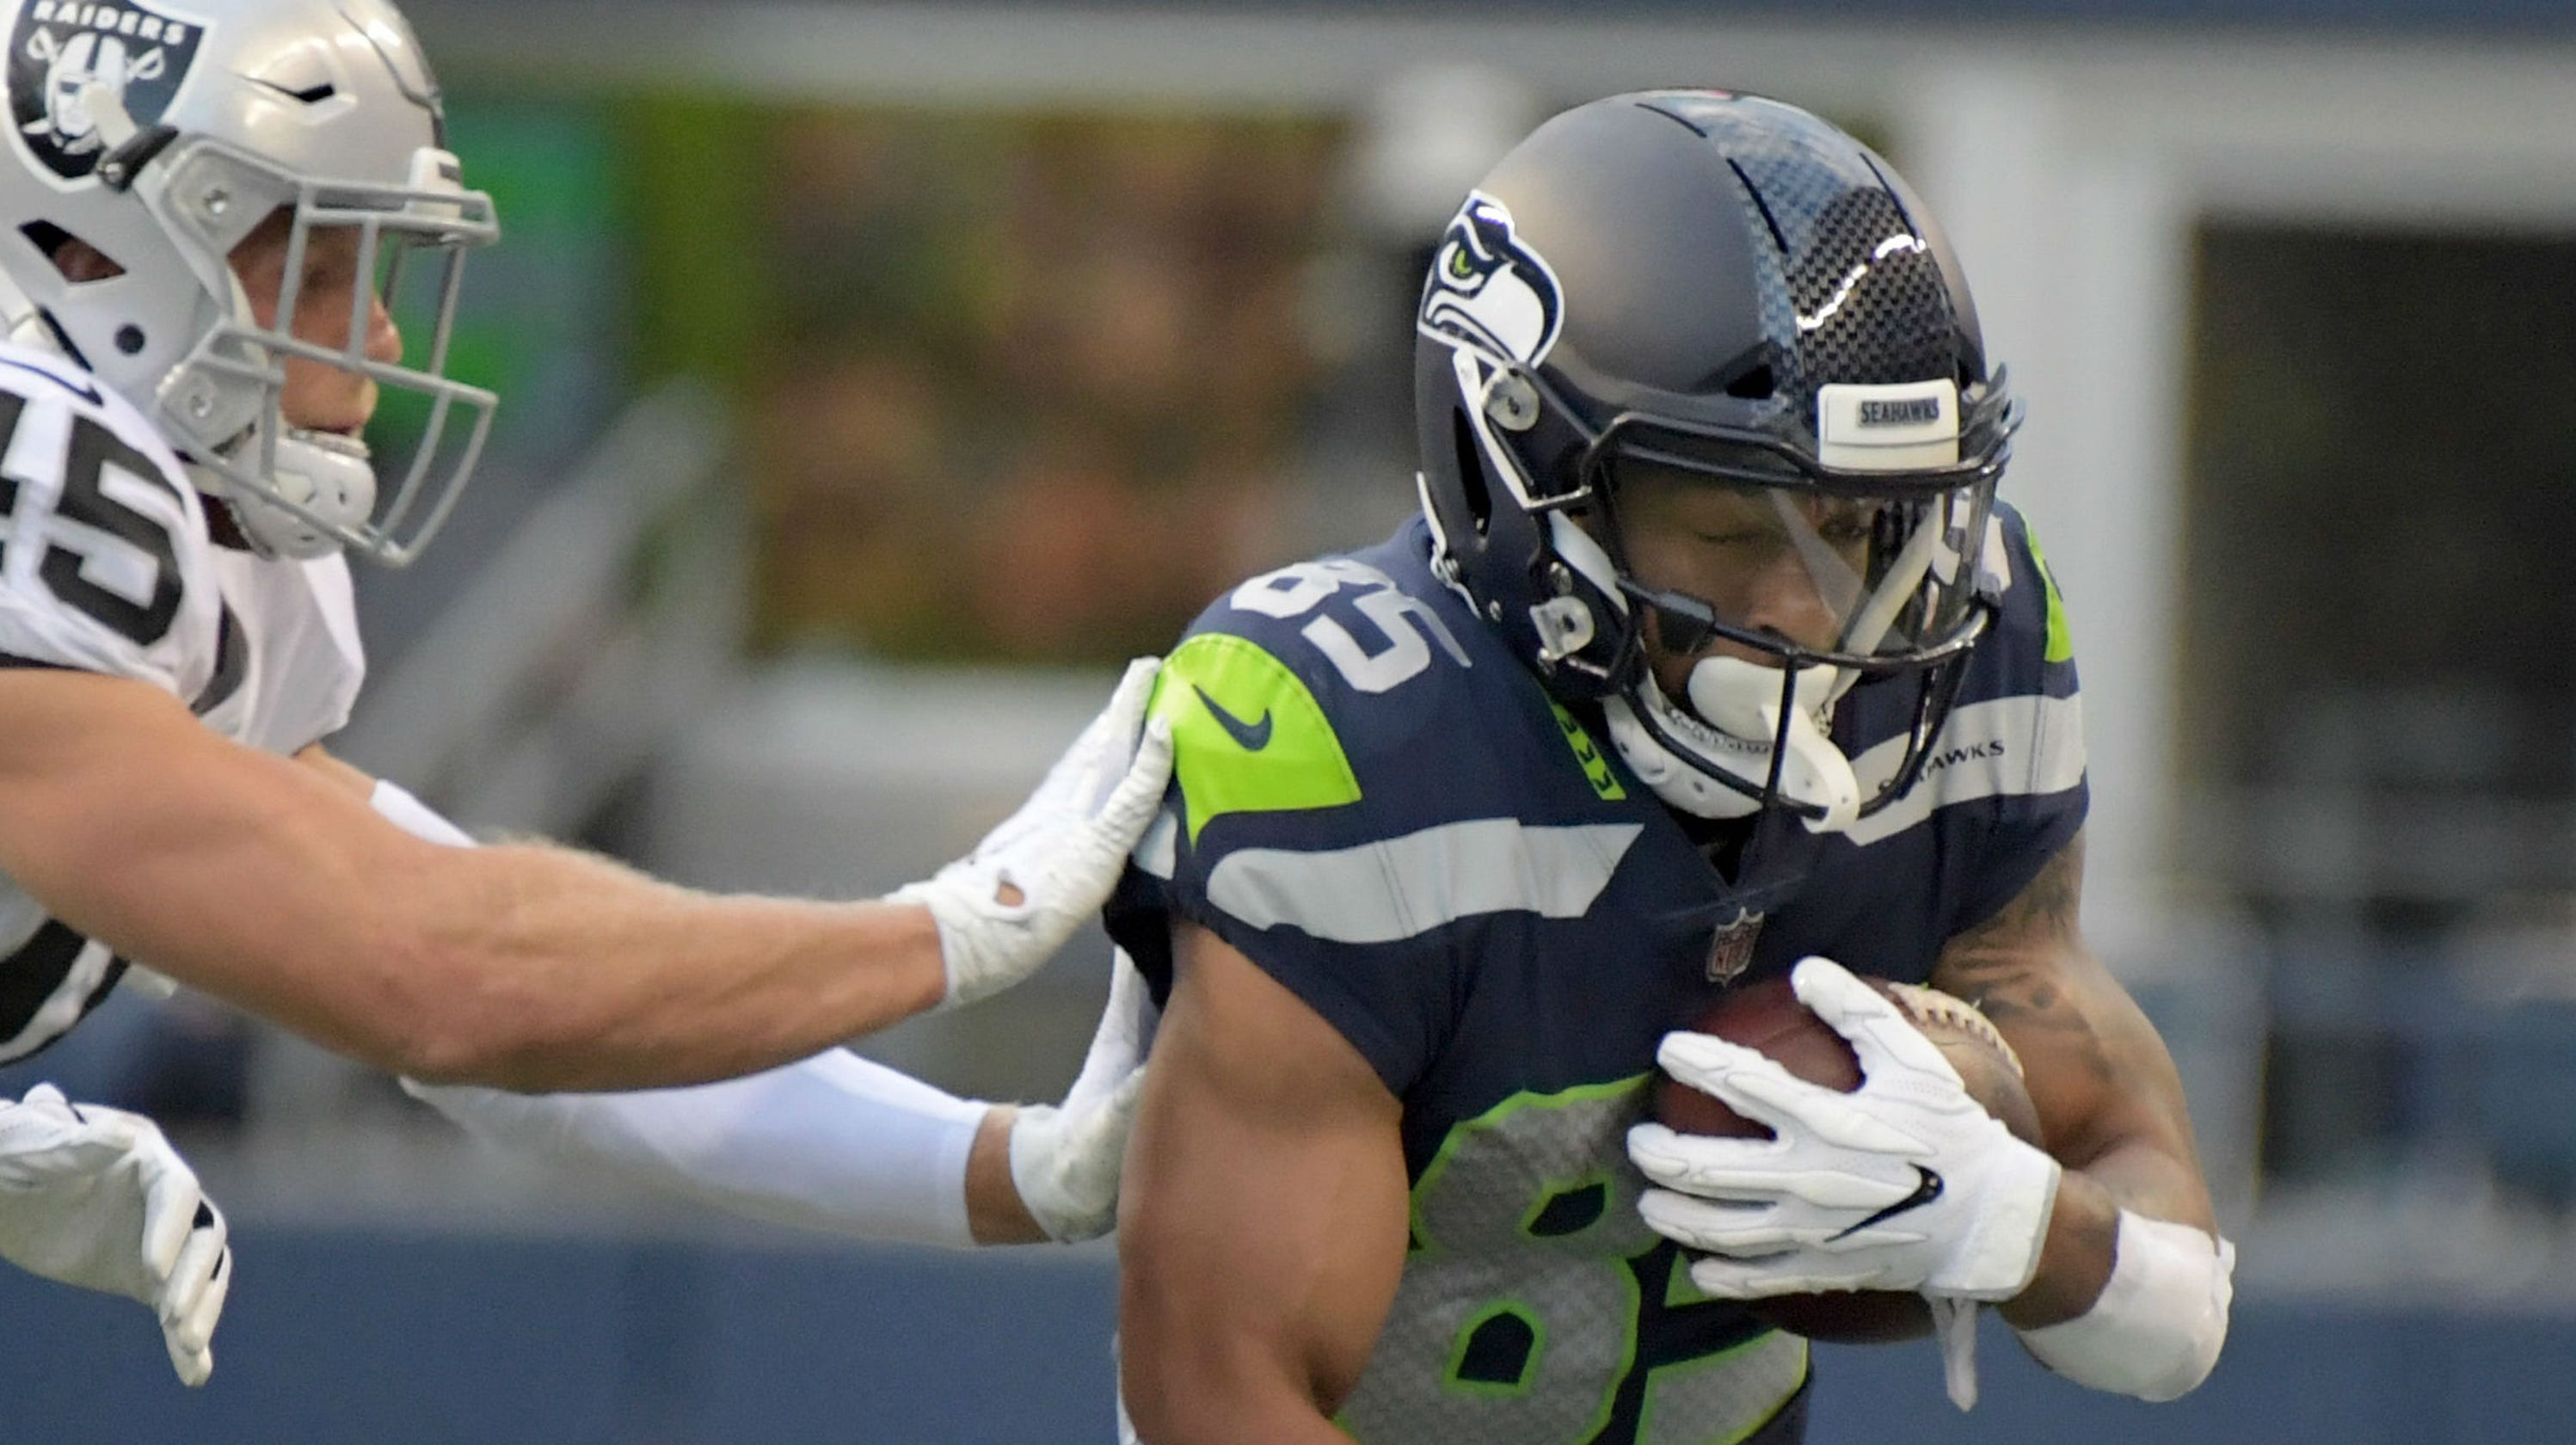 buy popular adf0f d25e5 Keenan Reynolds cut by Seattle Seahawks while in London